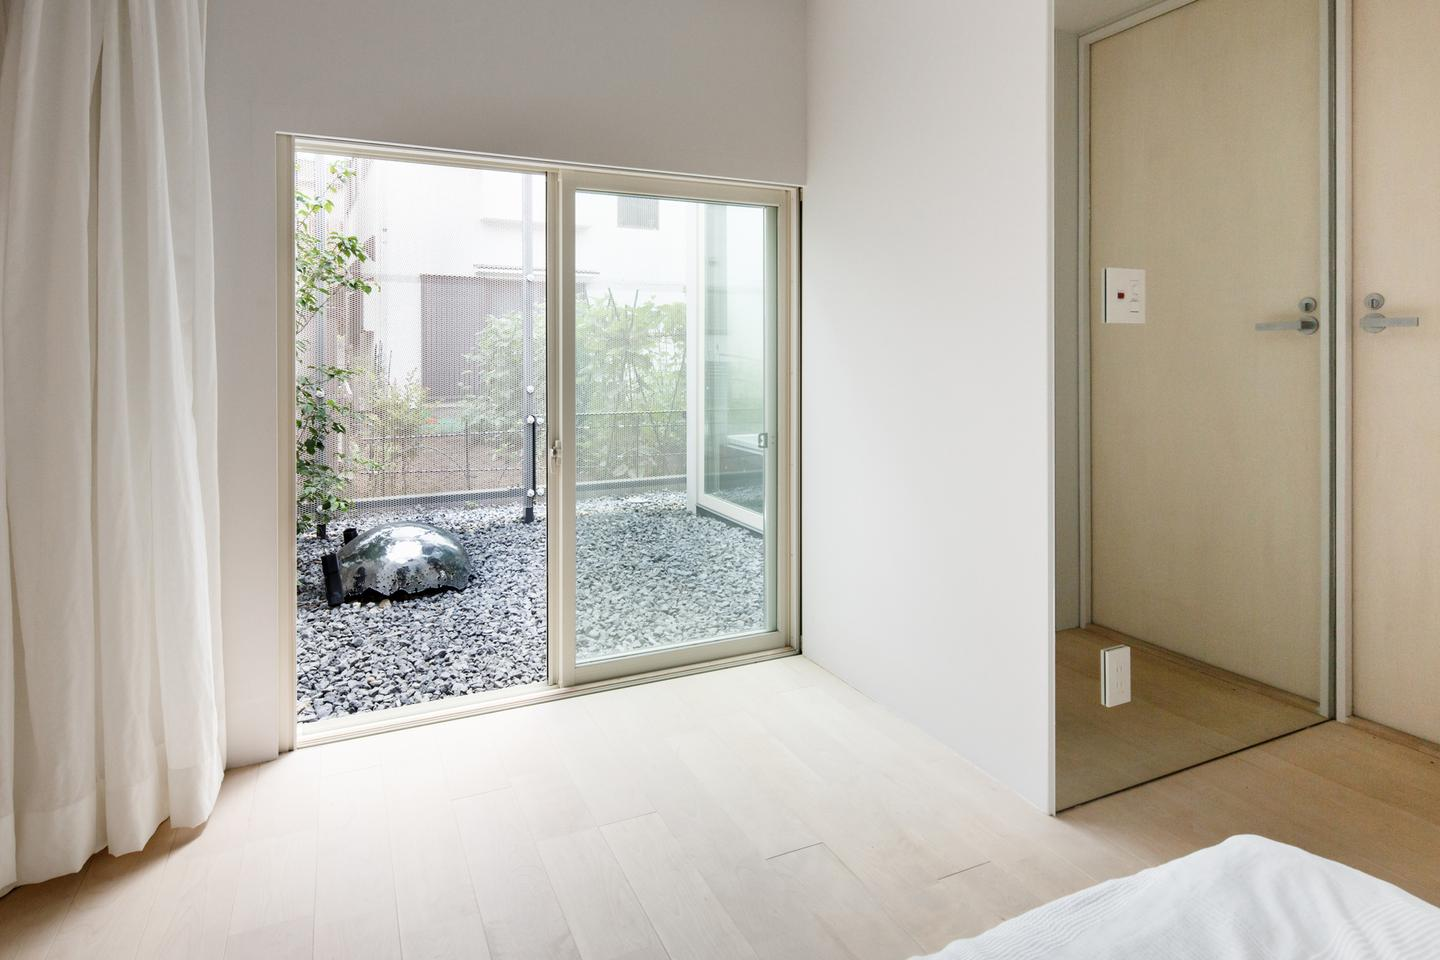 The small outdoor areas are accessible via sliding doors (Photo: Jérémie Souteyrat)